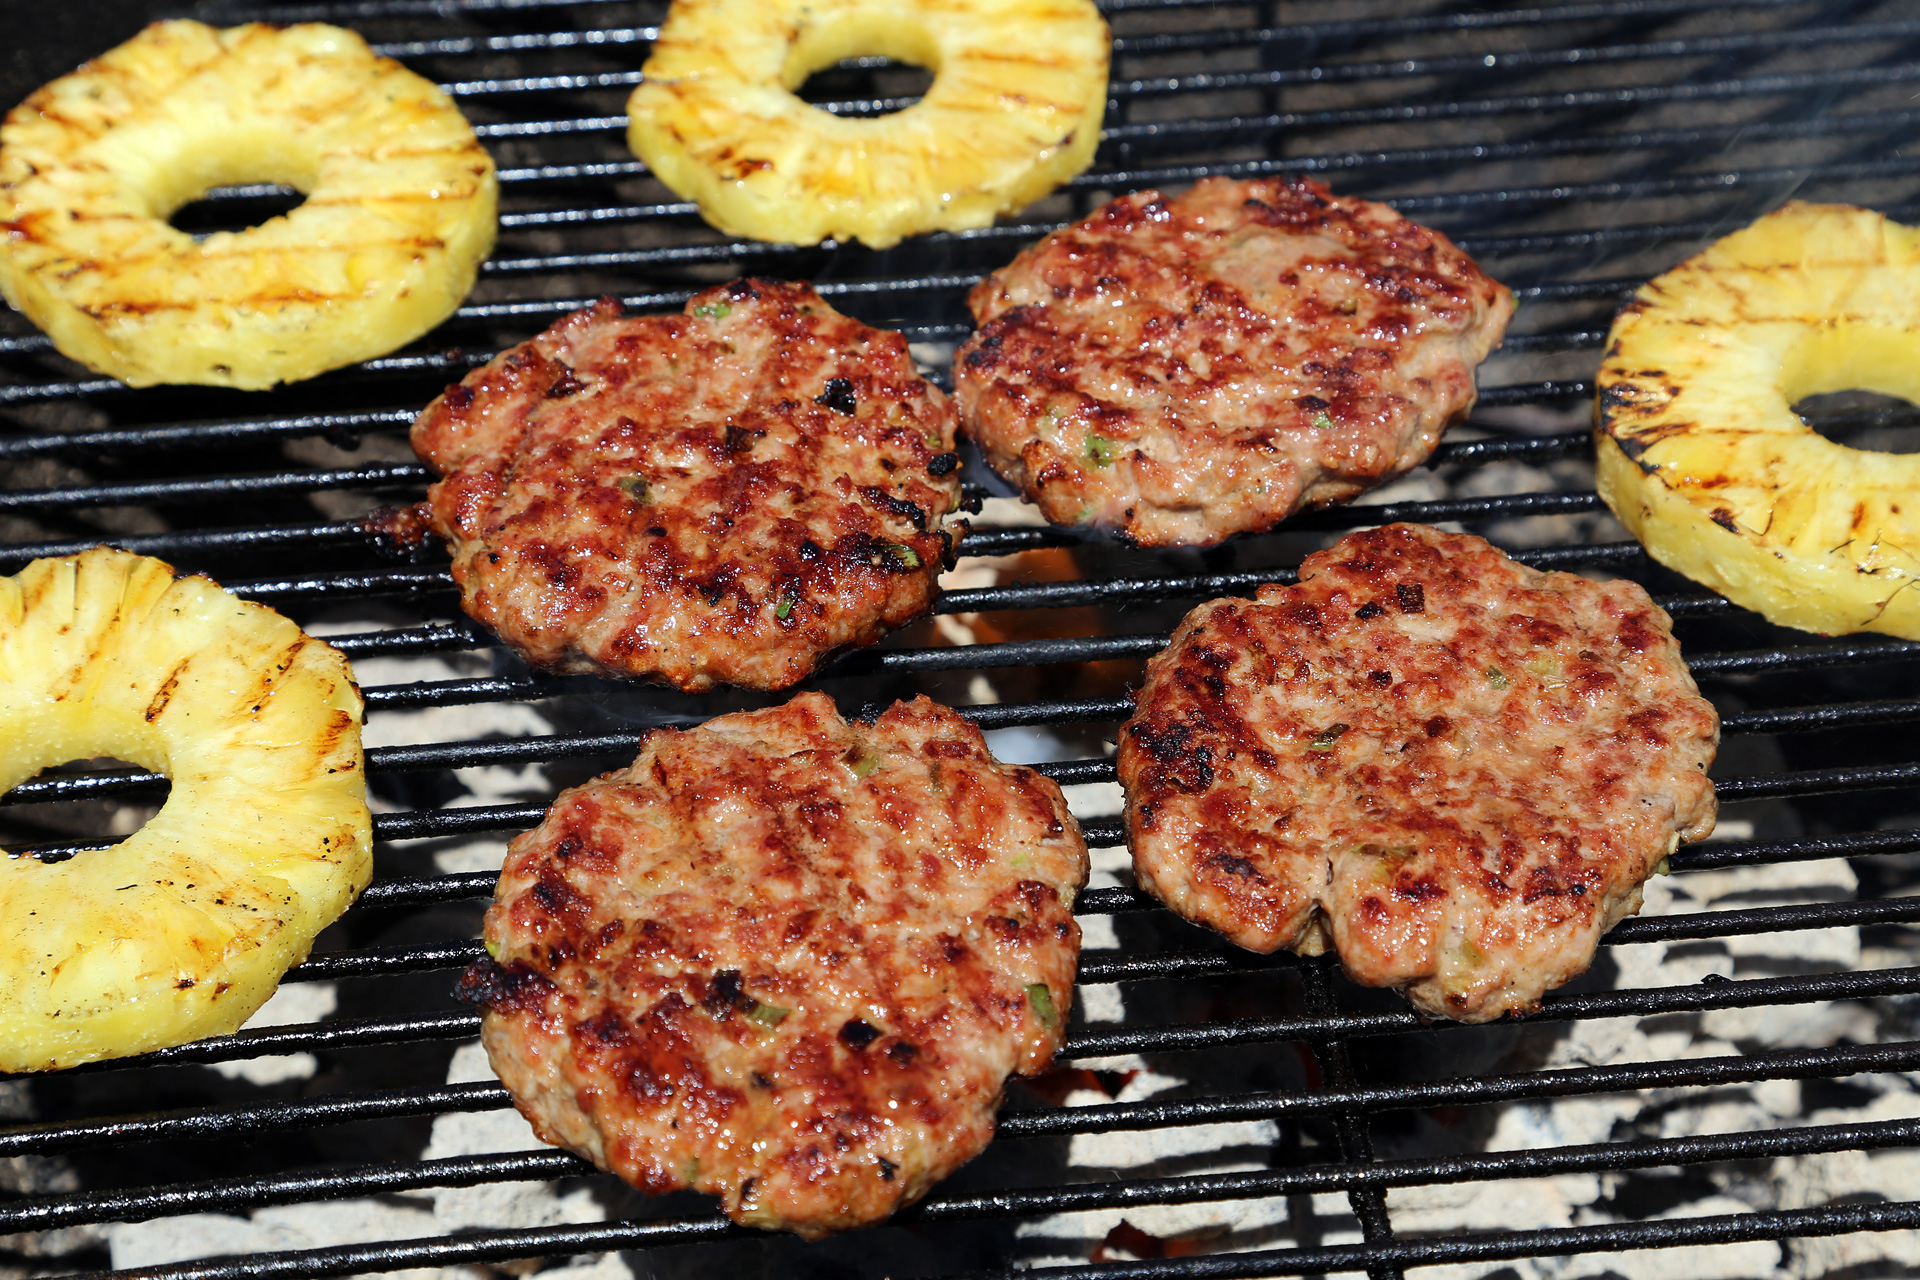 Grill the patties over the fire until nicely seared on both sides, turning occasionally, about 4 minutes on each side. During the last 4 minutes of cooking, add the pineapple slices. Grill, turning once, until nicely seared.